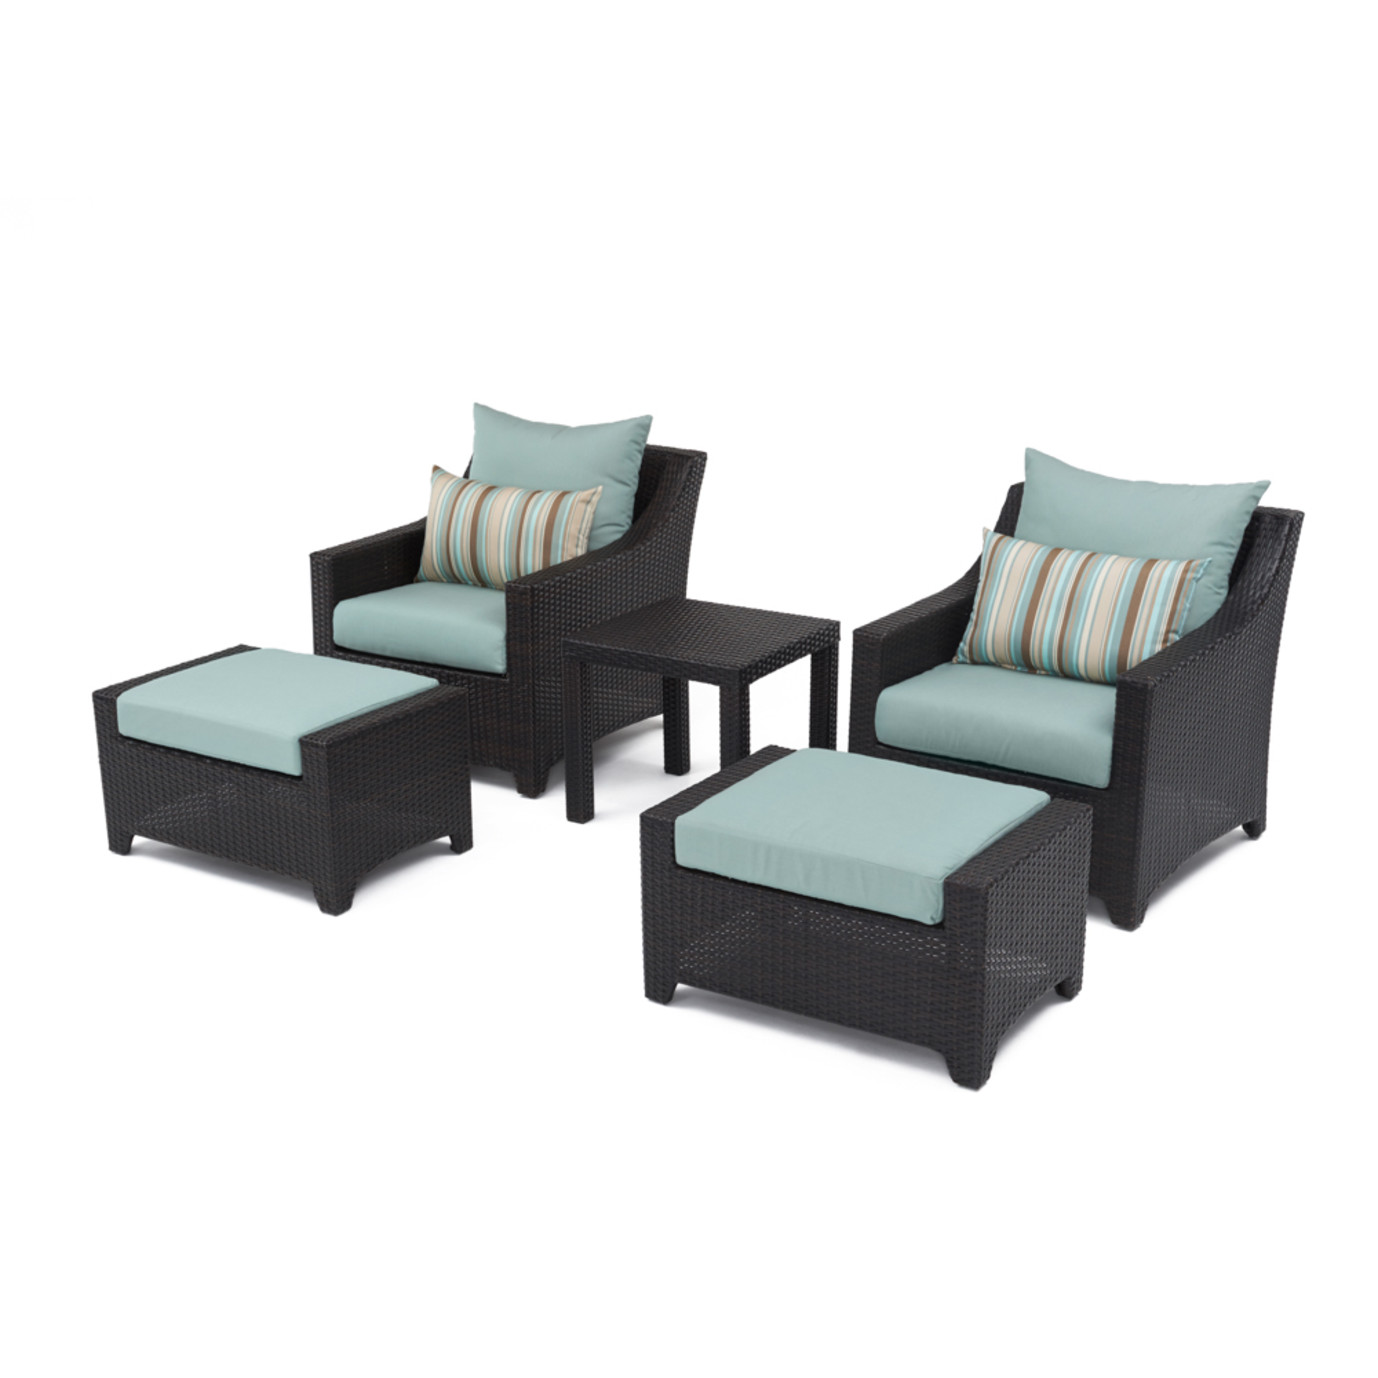 Deco™ 5pc Club Chair and Ottoman Set - Bliss Blue